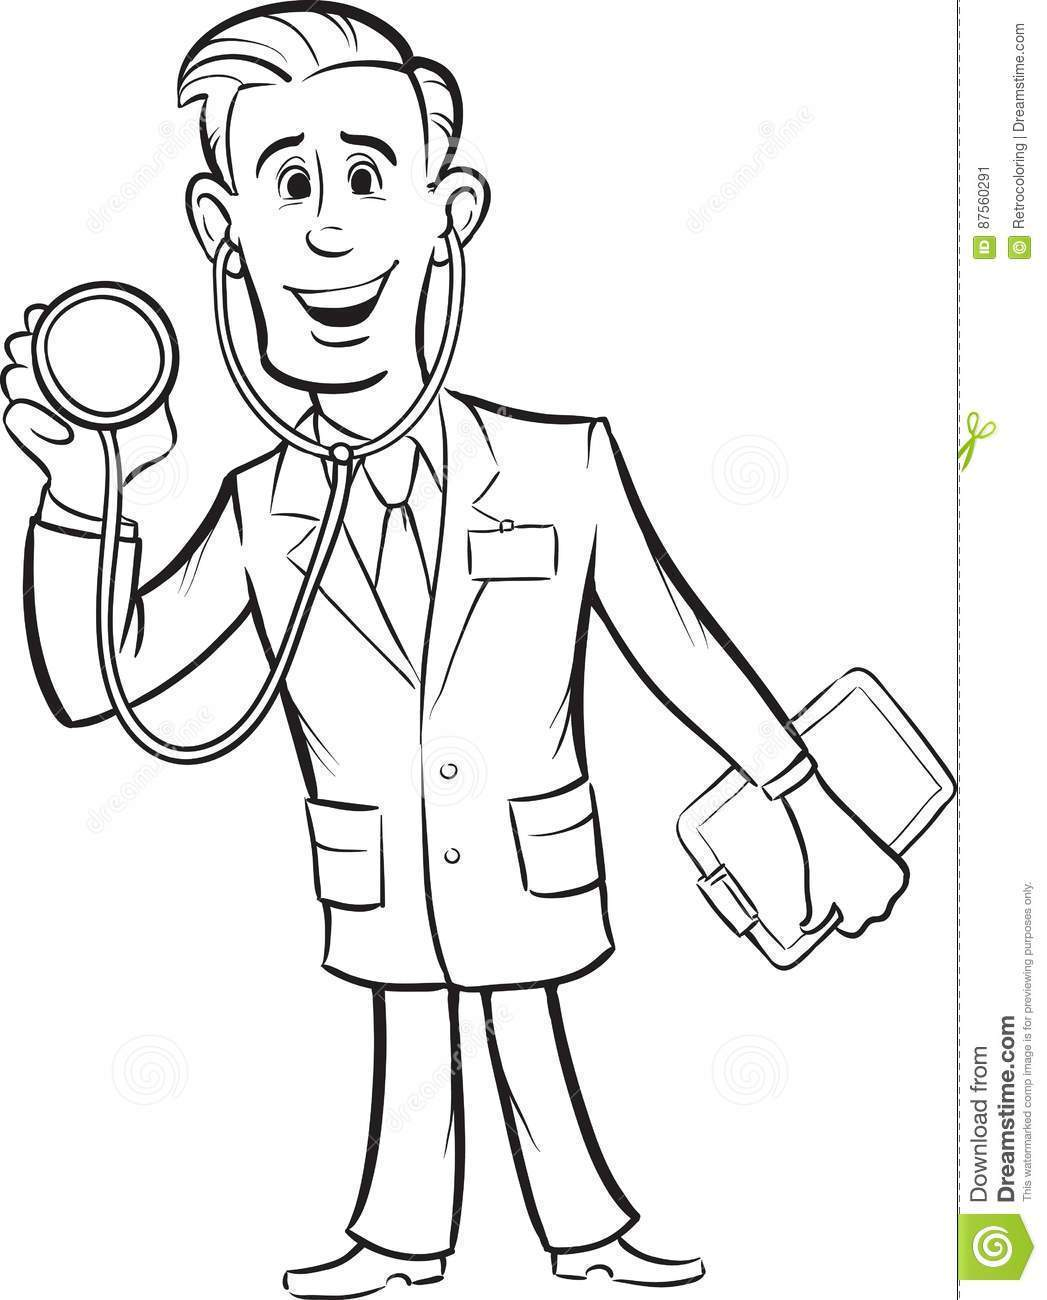 1047x1300 Marvelous Whiteboard Drawing Cartoon Funny Doctor With Stethoscope